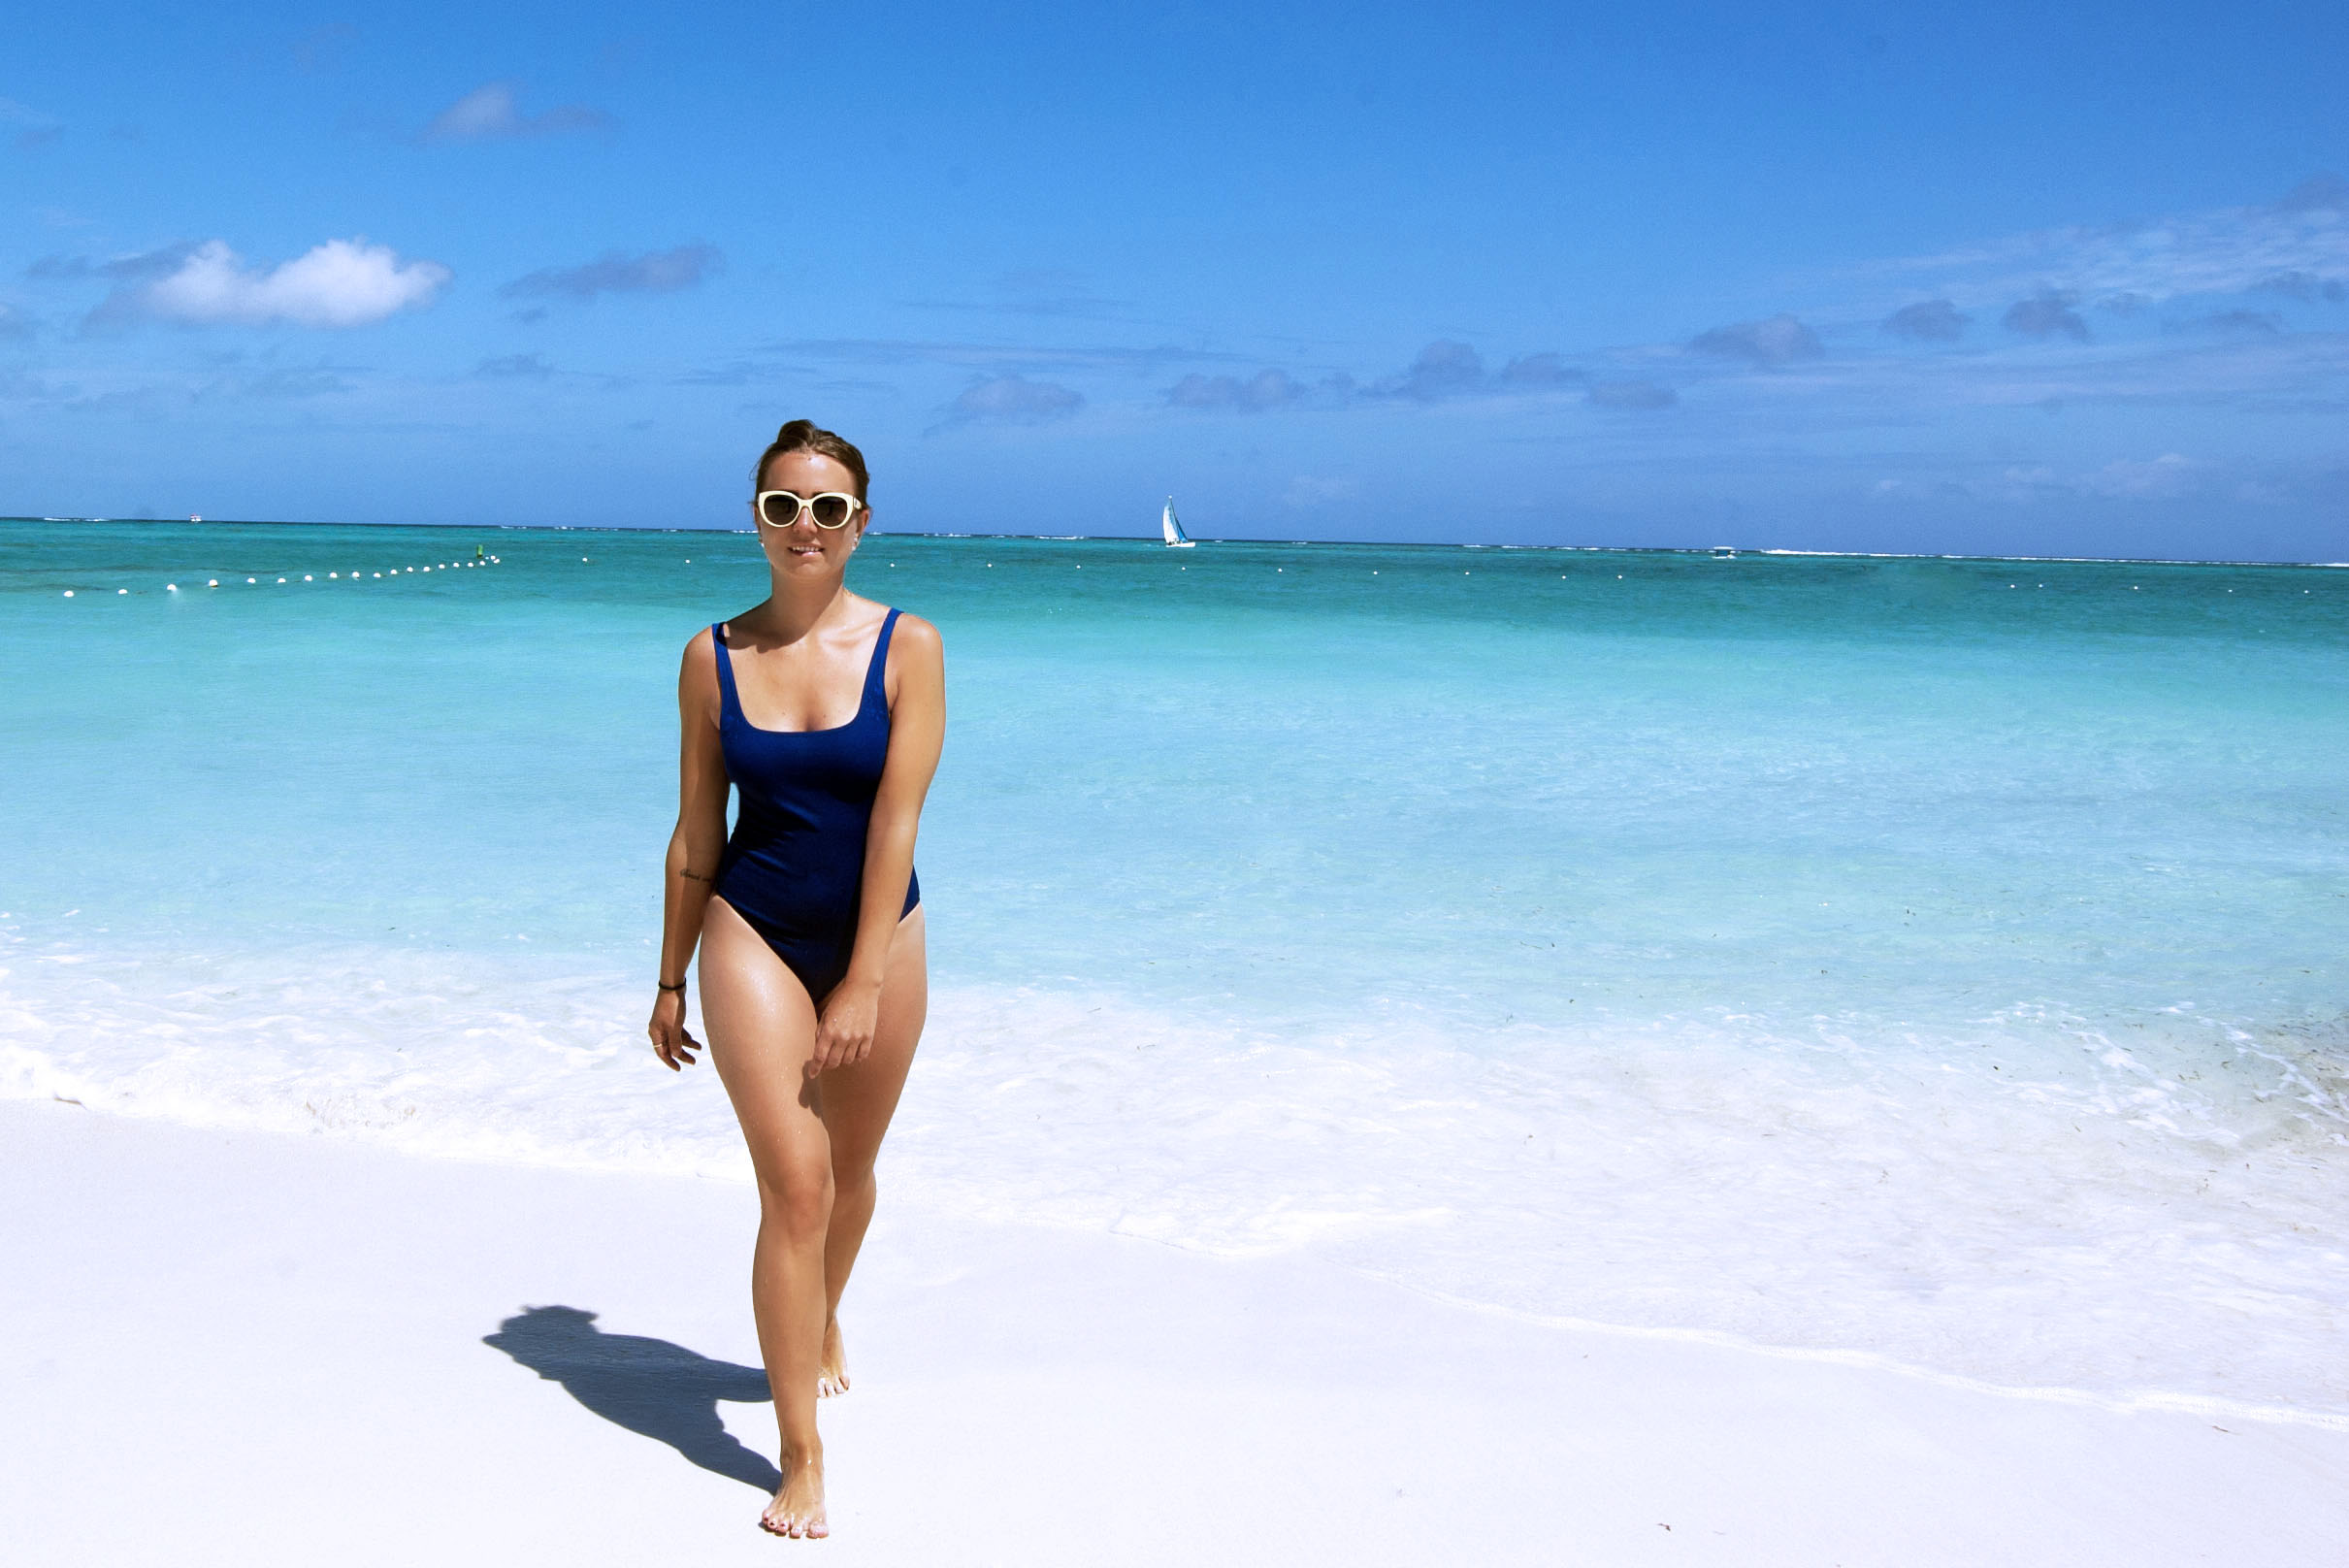 I am wearing vintage sunglasses, fin similar  here  // swimsuit from Zara, find similar  here .